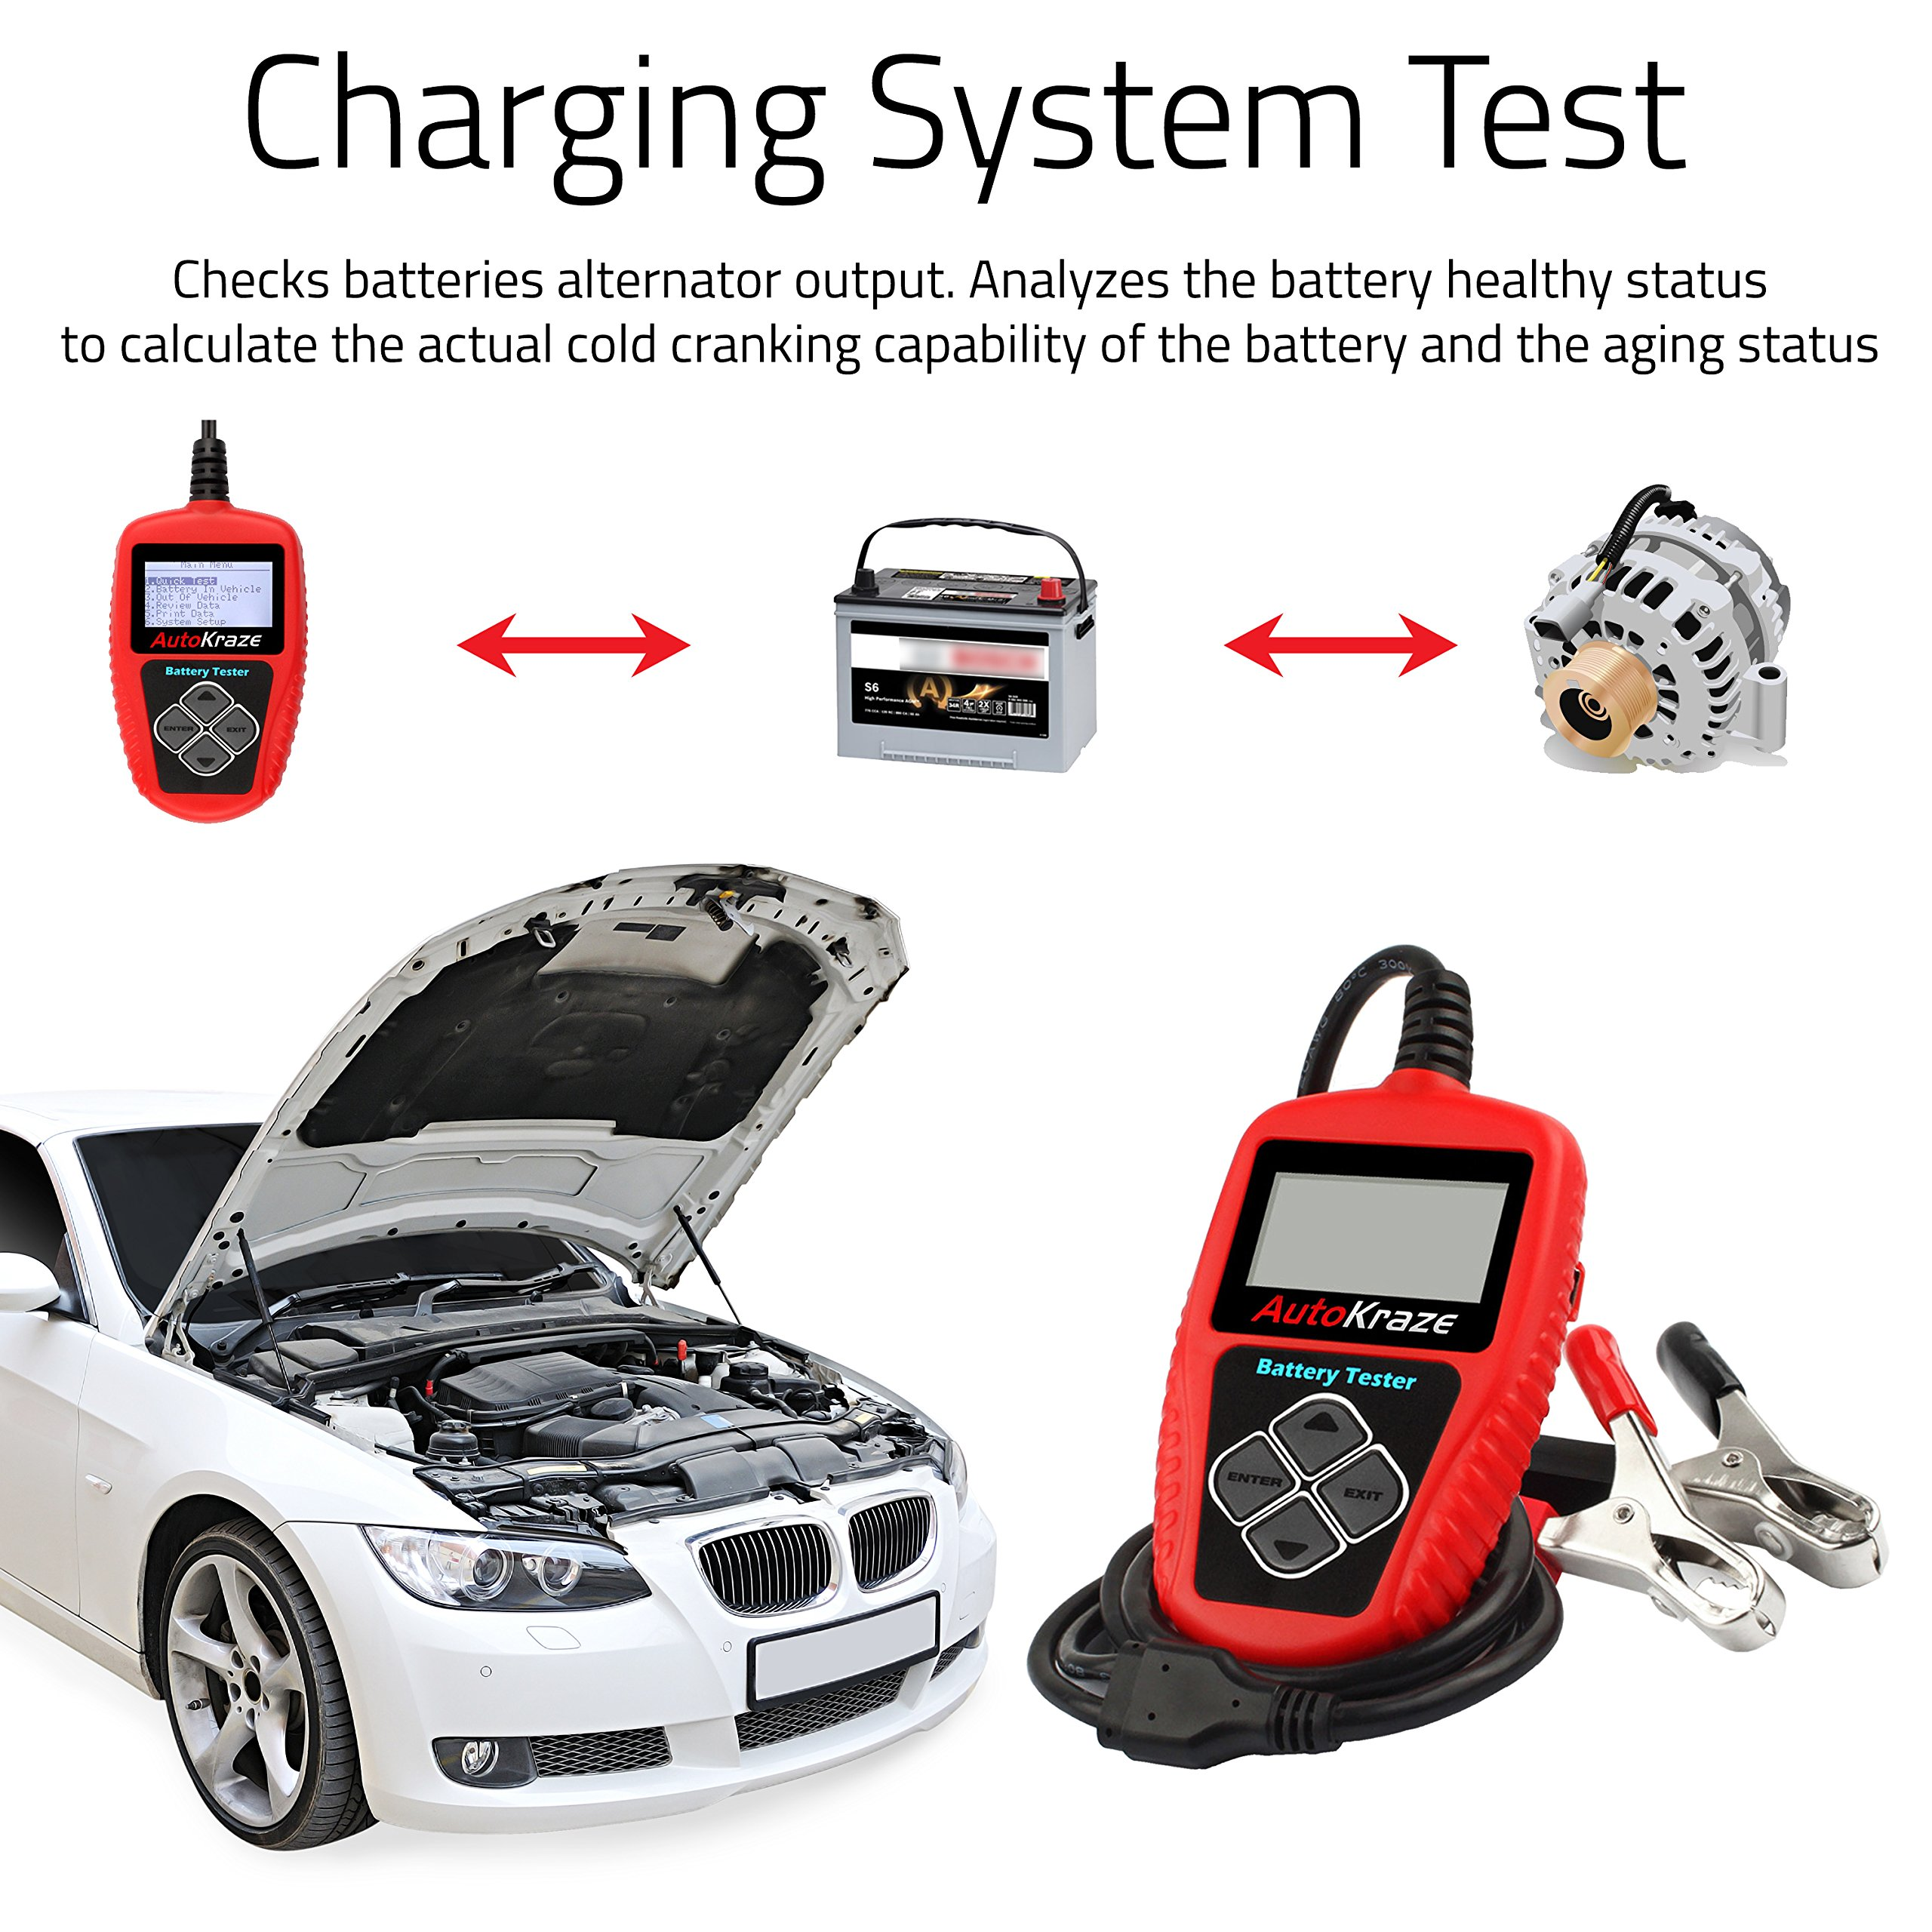 AutoKraze BA101 Automotive Battery Load Tester 12V 100-2000 CCA Bad Cell Test Analyzer Tool Directly Test Car, Boat, and Motorcycle Battery Status Portable, Digital and Rechargeable Battery Tester by AutoKraze (Image #8)